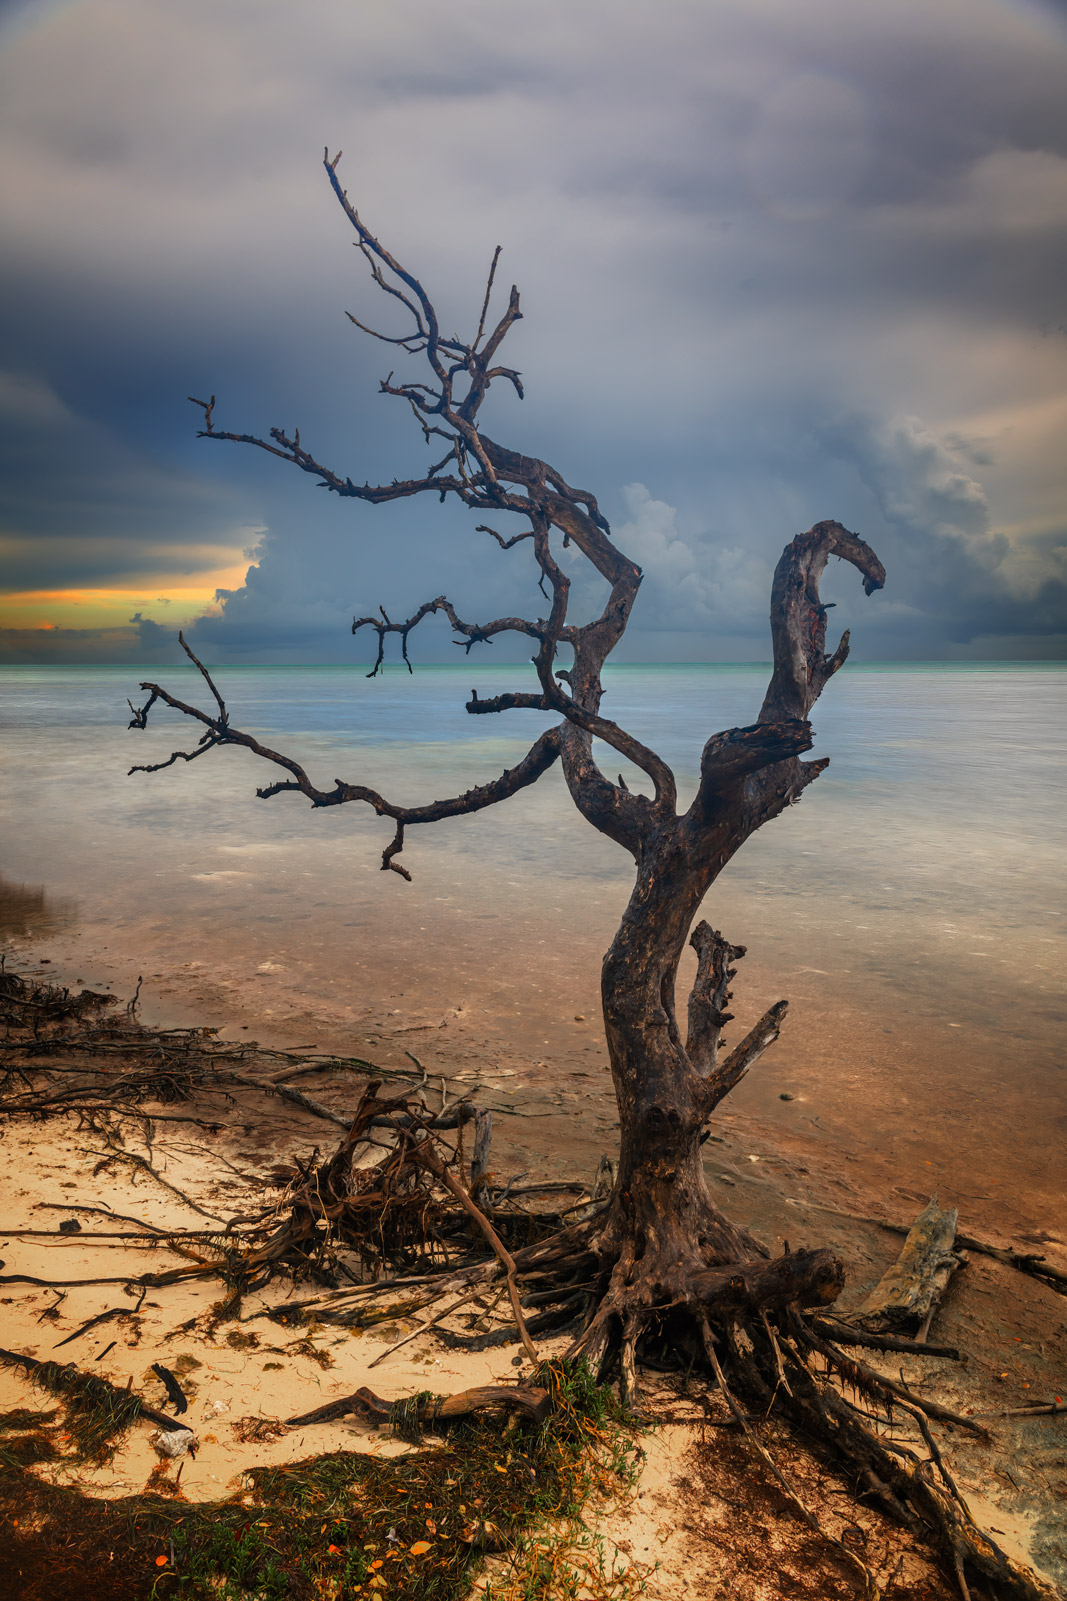 A Limited Edition, Fine Art photograph of a dead tree in the water during a stormy sunrise in the Florida Keys. Available as...